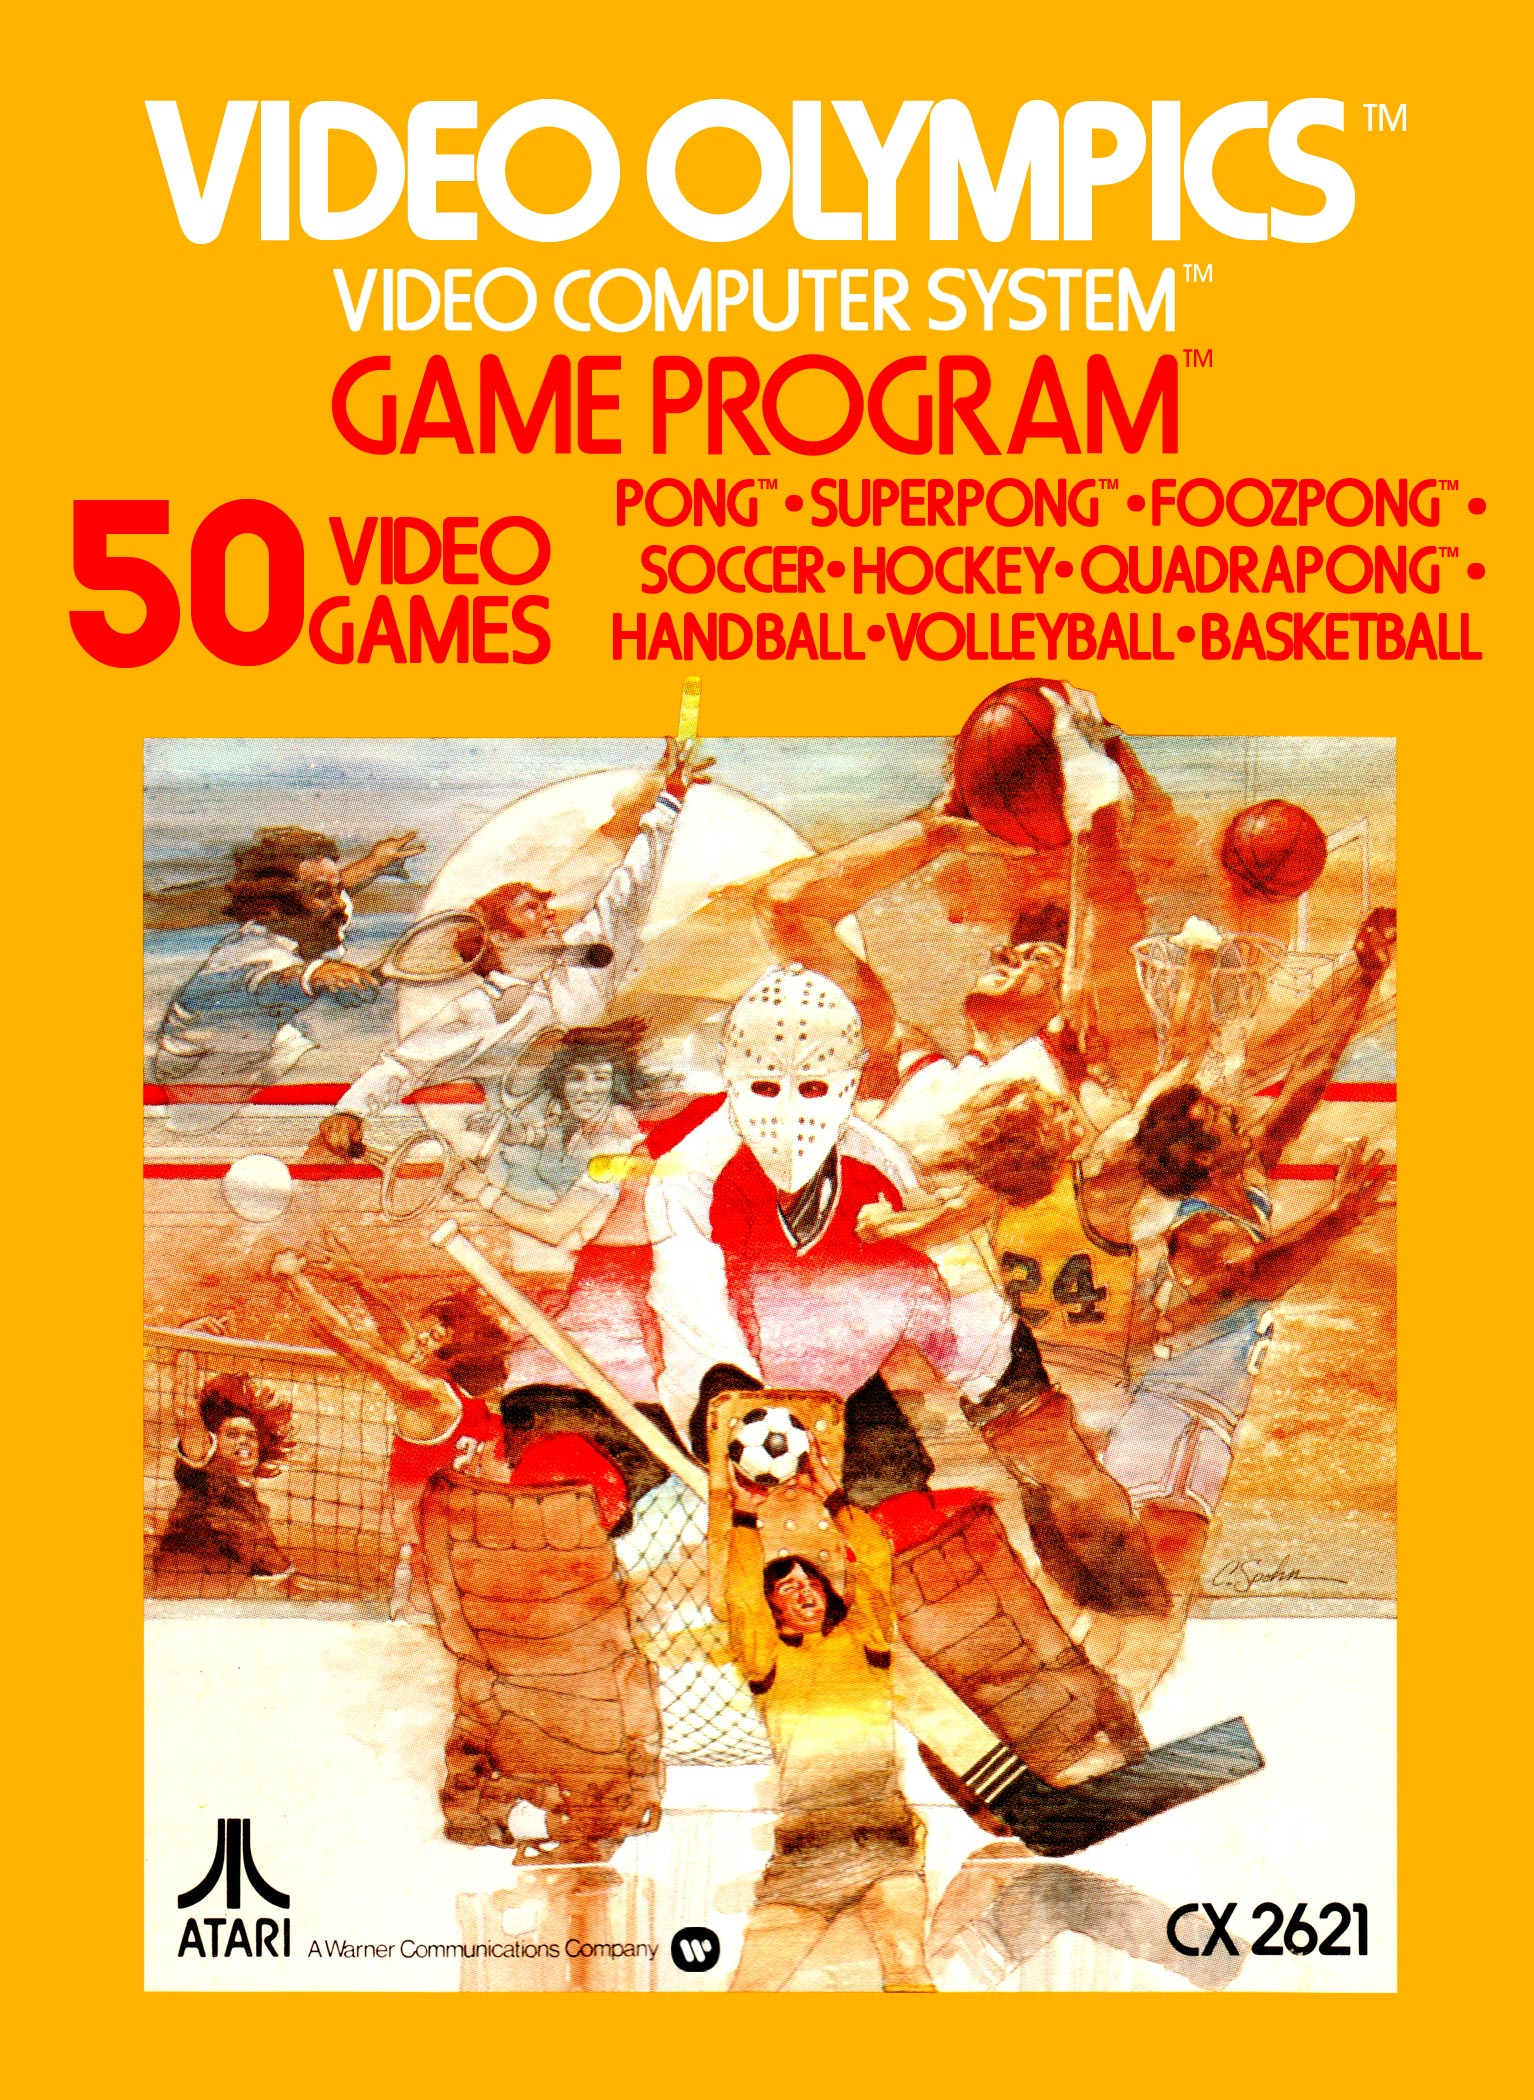 Video Olympics, for the Atari VCS home video game console